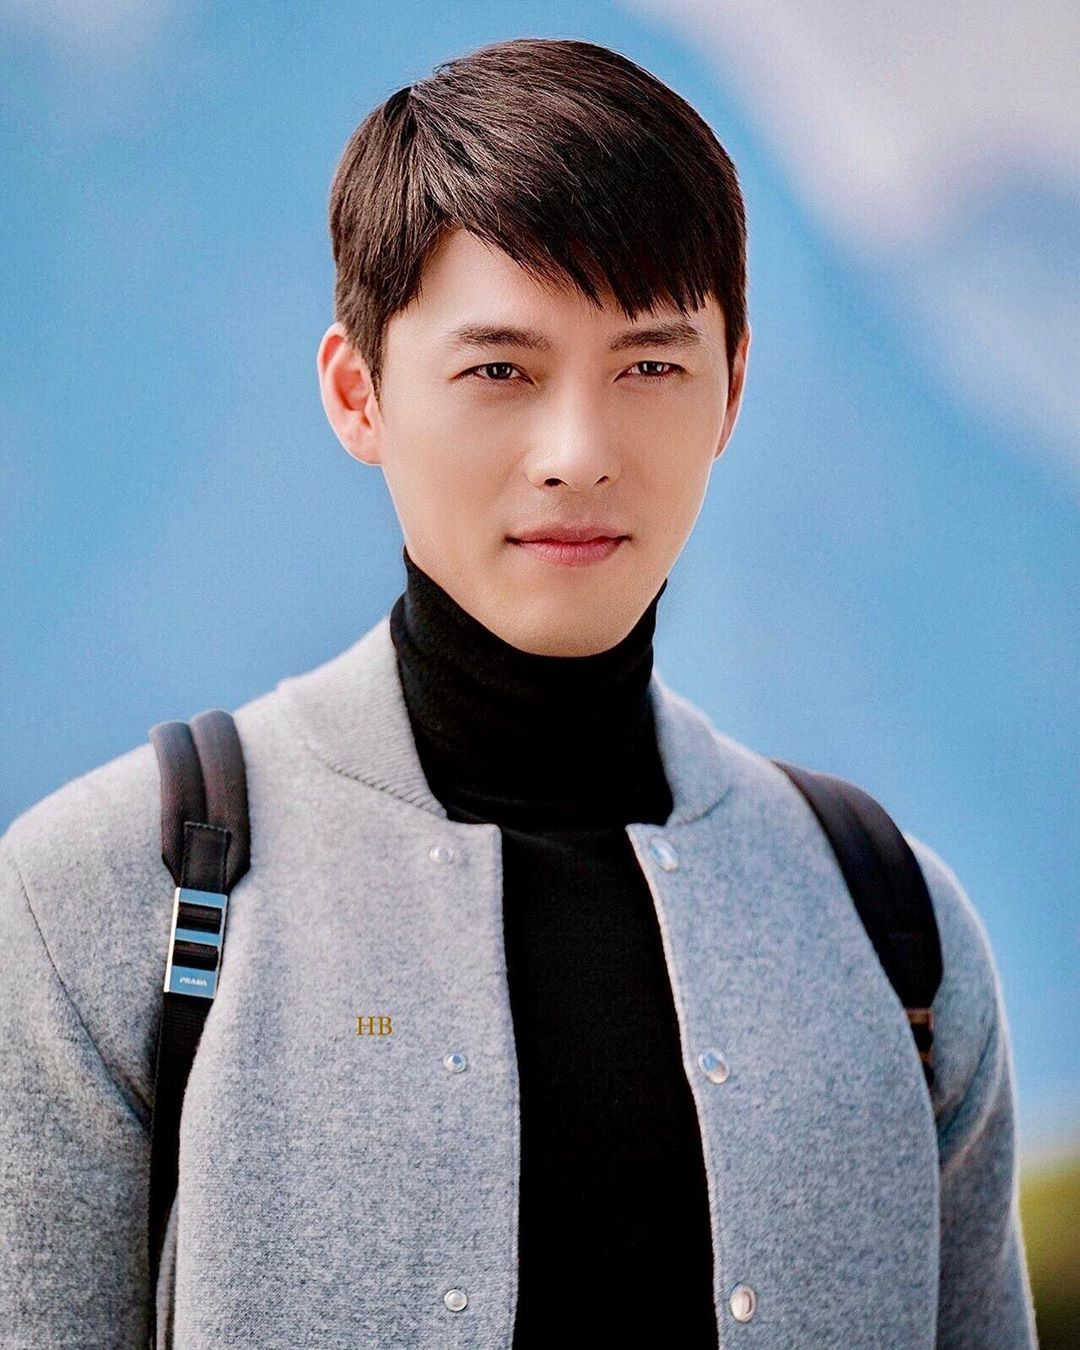 611 Likes, 10 Comments - Korean actor Hyun Bin 현빈 ...